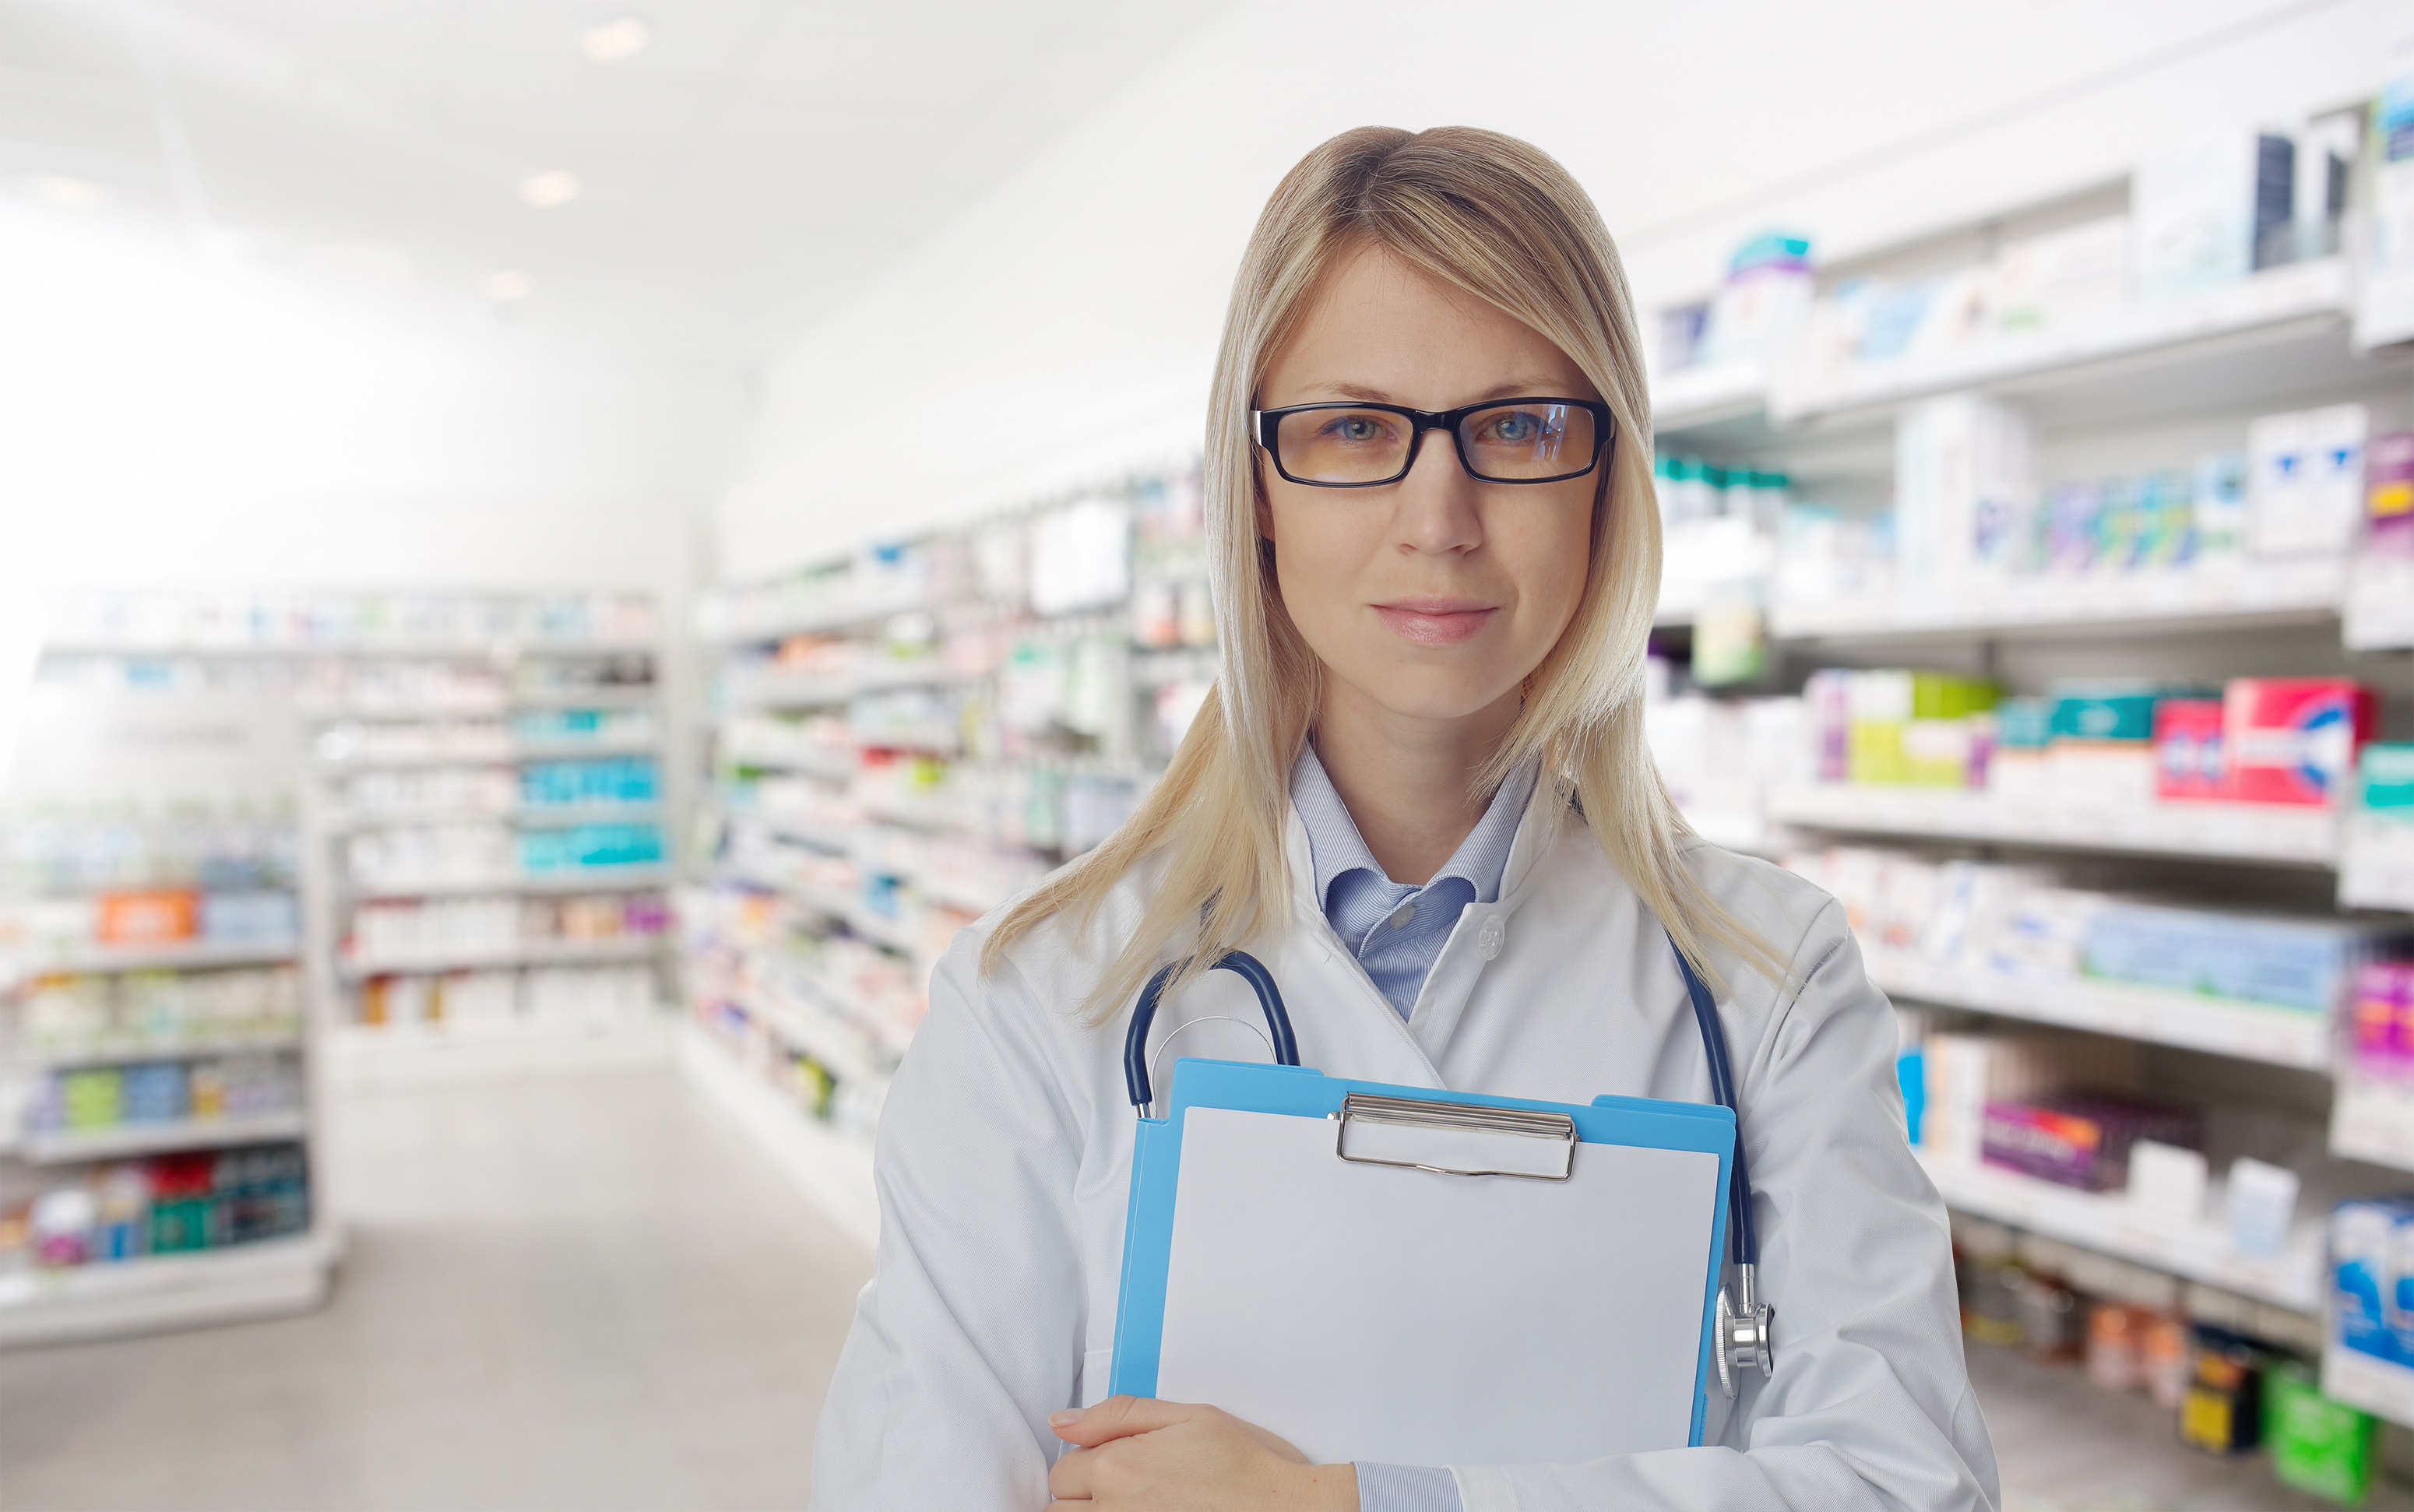 Portrait of smiling female pharmacist in pharmacy drugstore